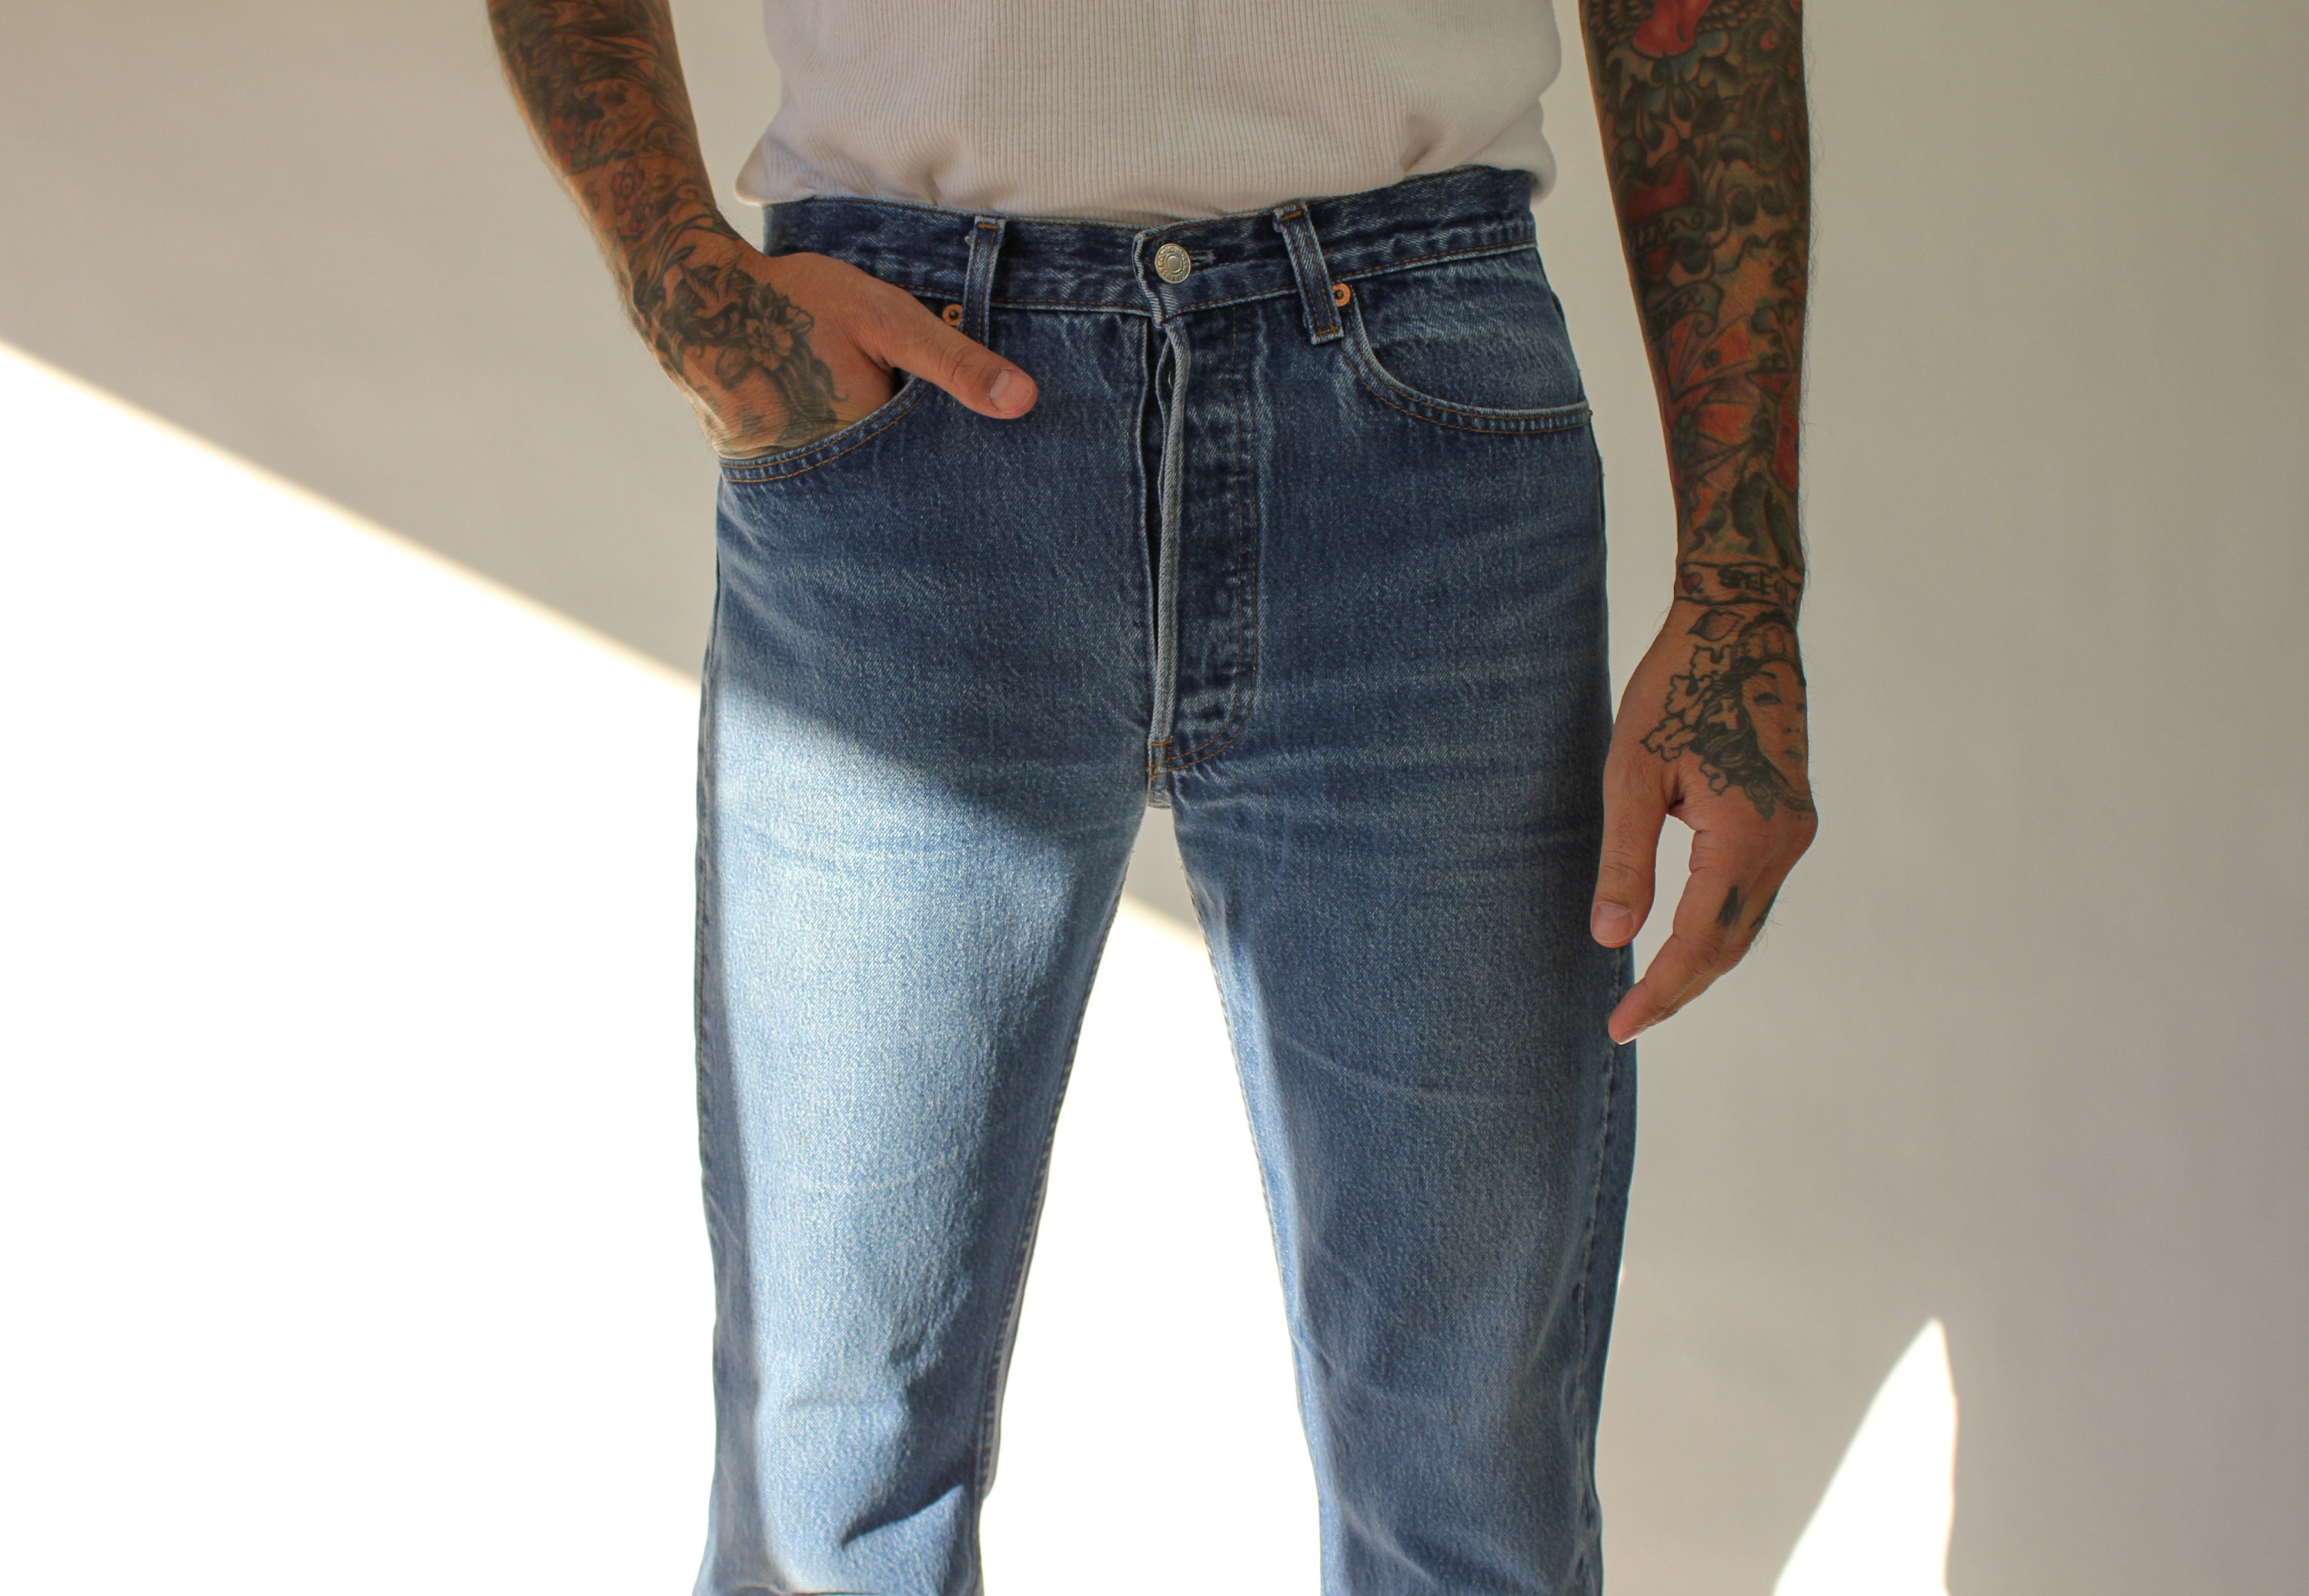 80s Dresses | Casual to Party Dresses Vintage 80S 90S Levis 501 Whiskered Medium Wash Distressed Button Fly Jeans  Made in Usa Size 31 1980S 1990S Indigo Denim Pants $22.95 AT vintagedancer.com